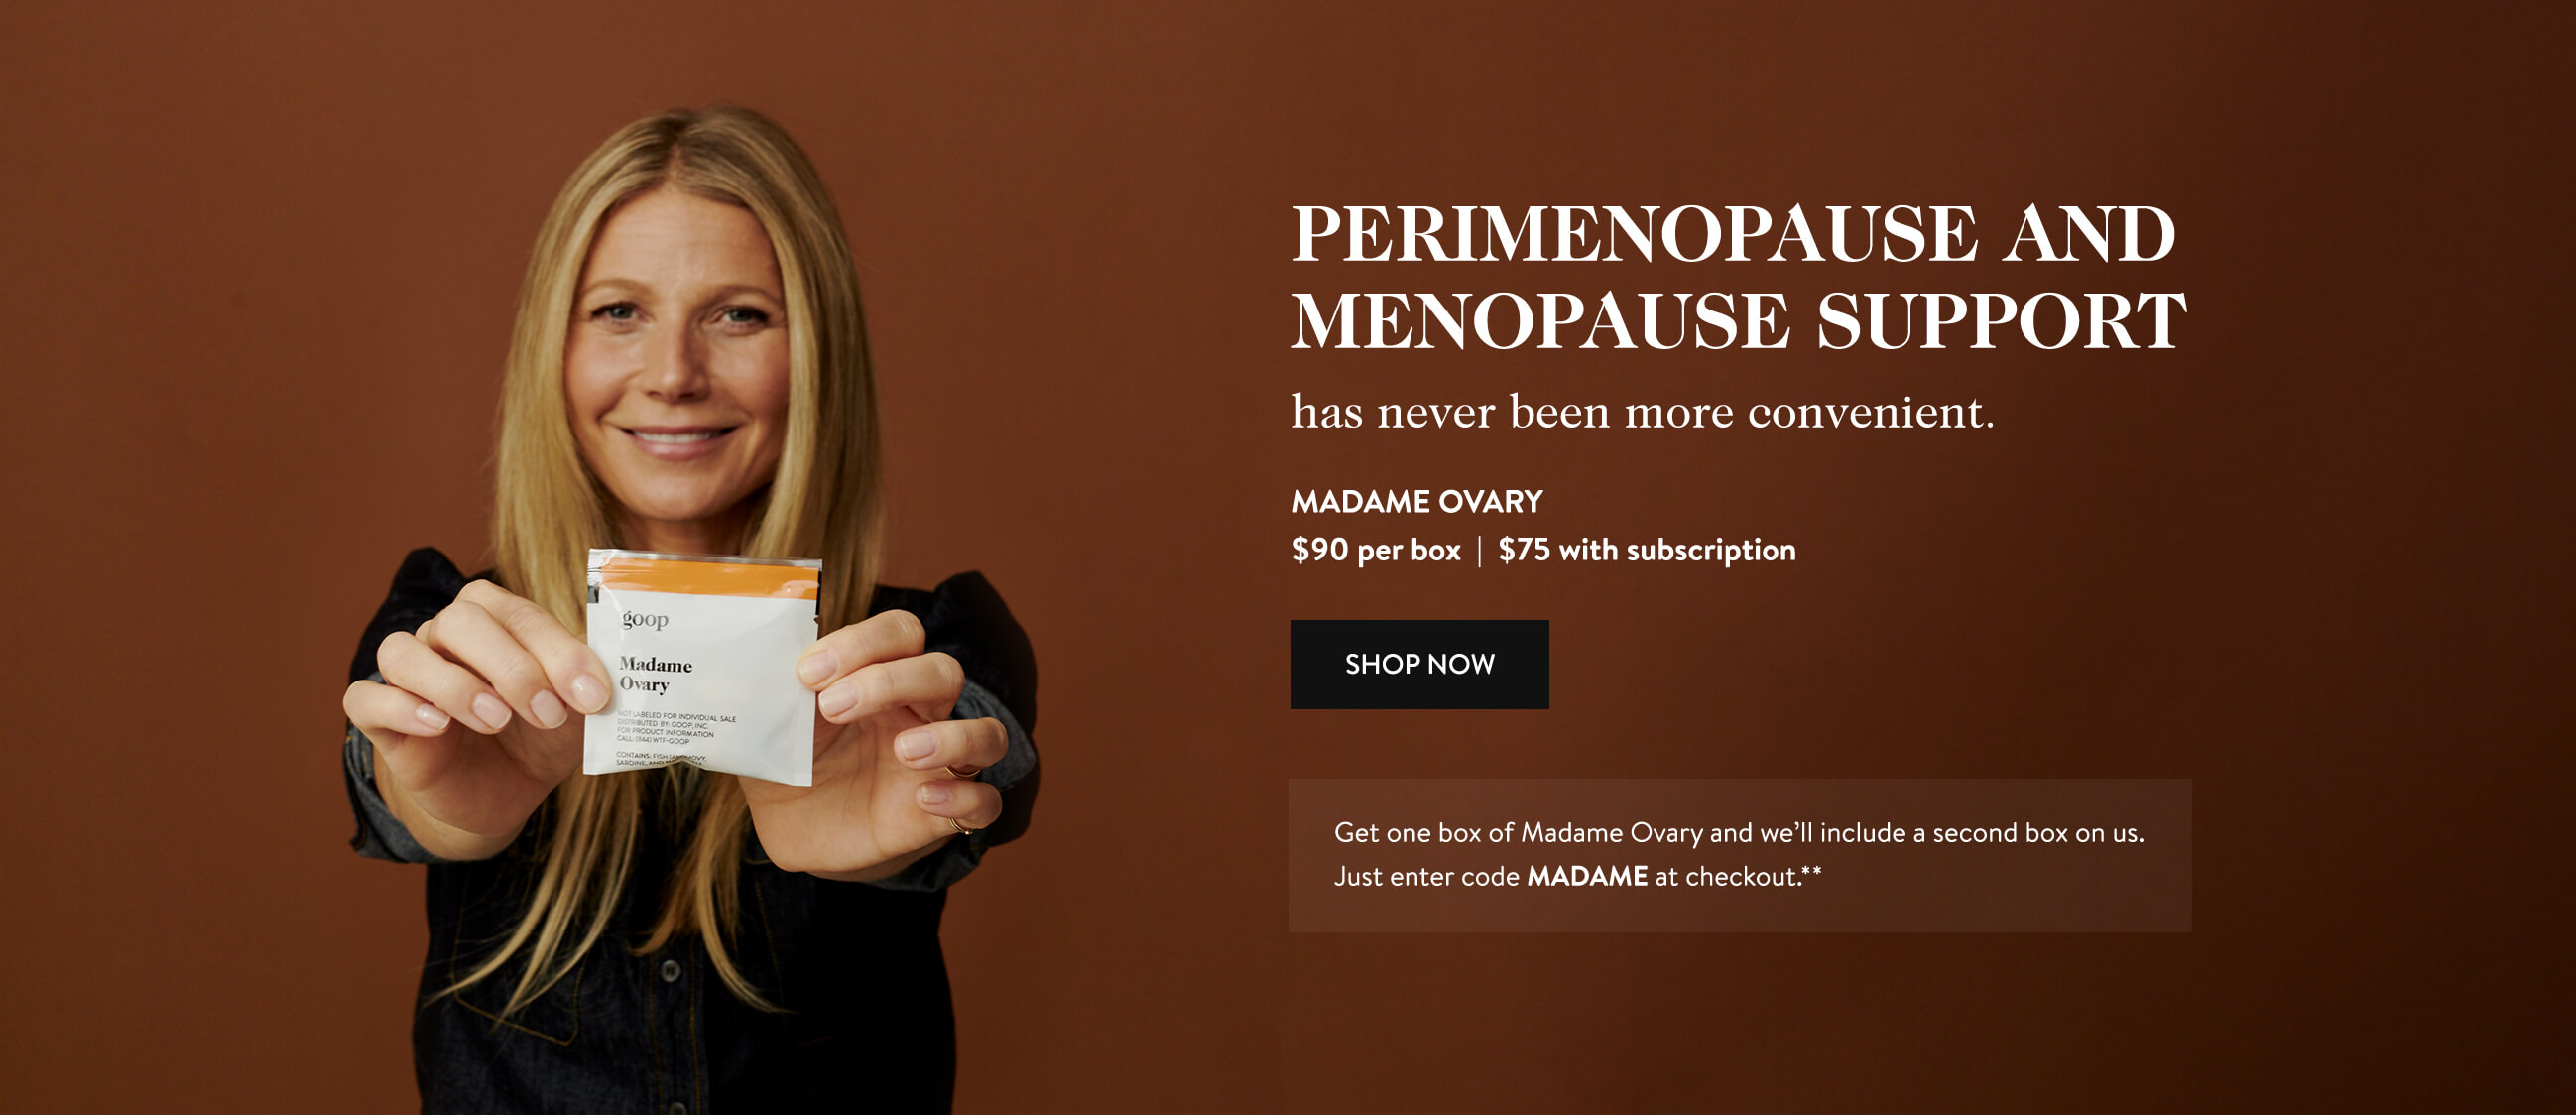 Gwyneth Paltrow holding Madame Ovary Vitamin Pack